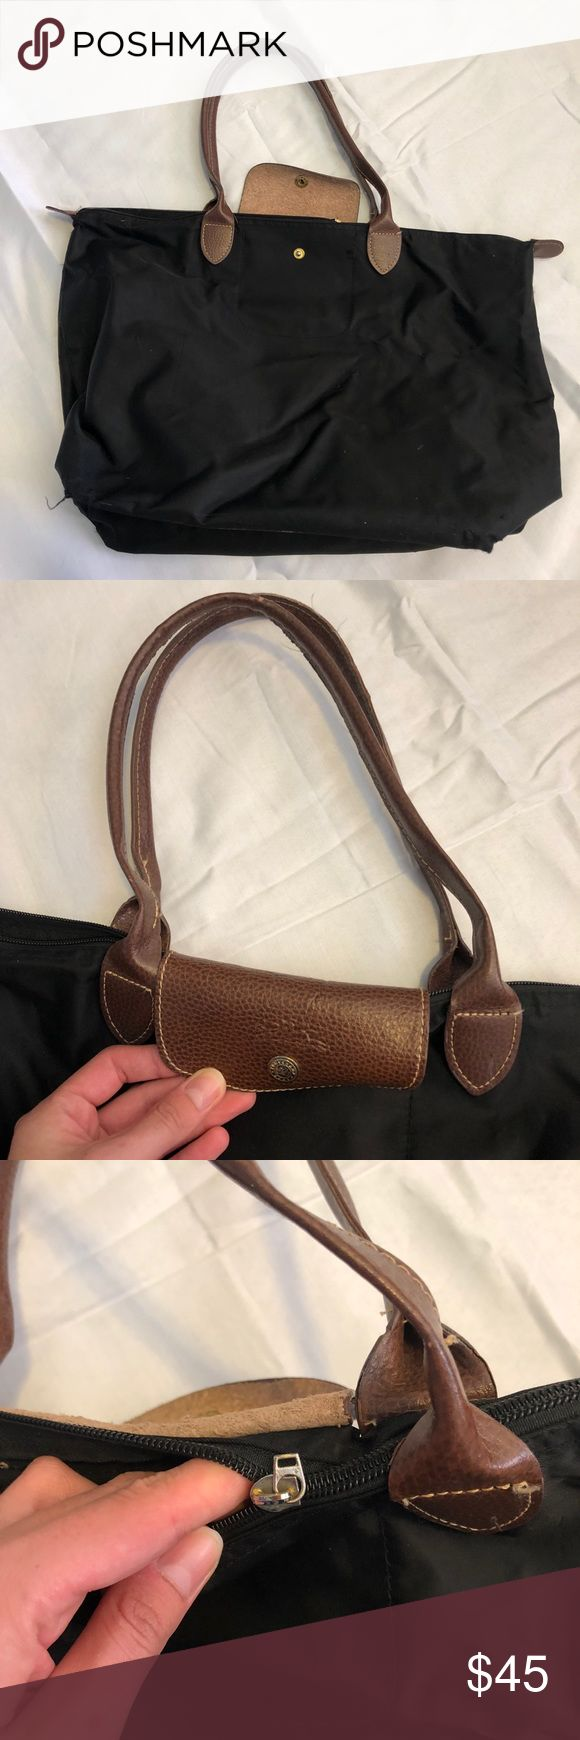 """Longchamp bag Worn, definitely used. Zipper part broke but can still be closed / open. Not too dirty, as I kept a bottom at the bottom to prevent it from getting dirty. Not sure if 100% authentic. I ordered from eBay, and it came from """"China"""" so when i received it I was always on the edge of whether it was authentic or not, but the price was great and I can't tell a difference so I kept it. Let me know if any questions! Longchamp Bags"""